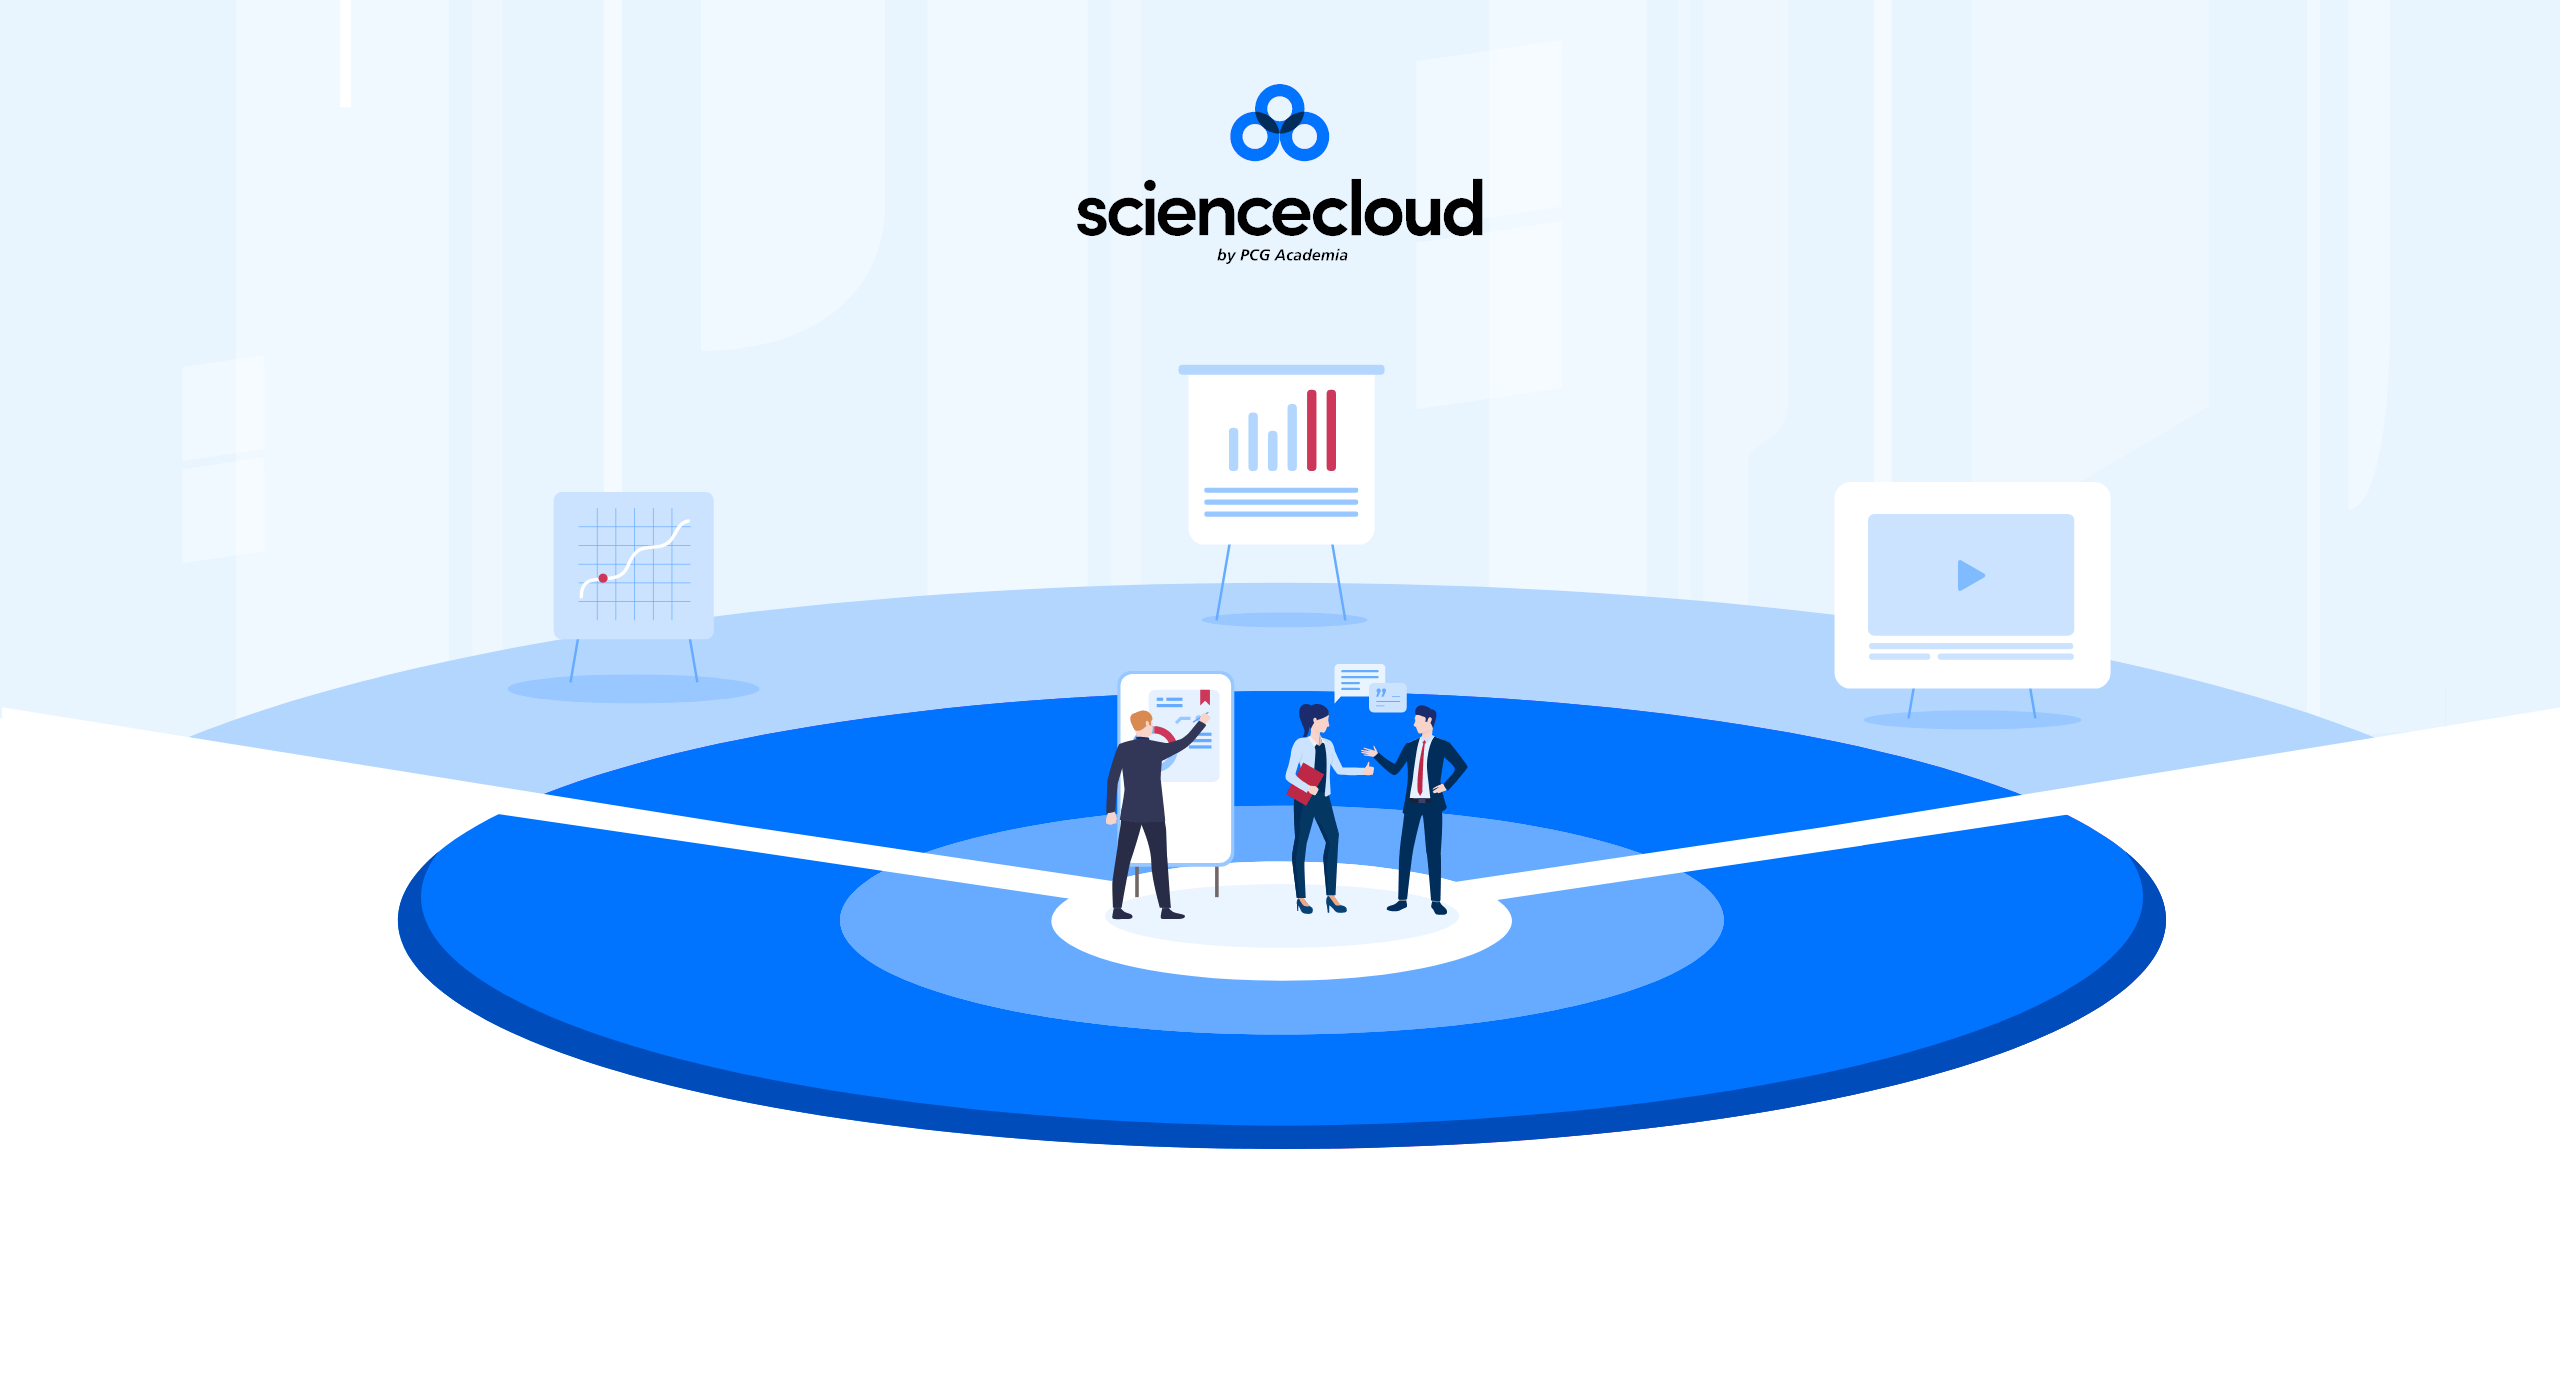 sciencecloud infographic